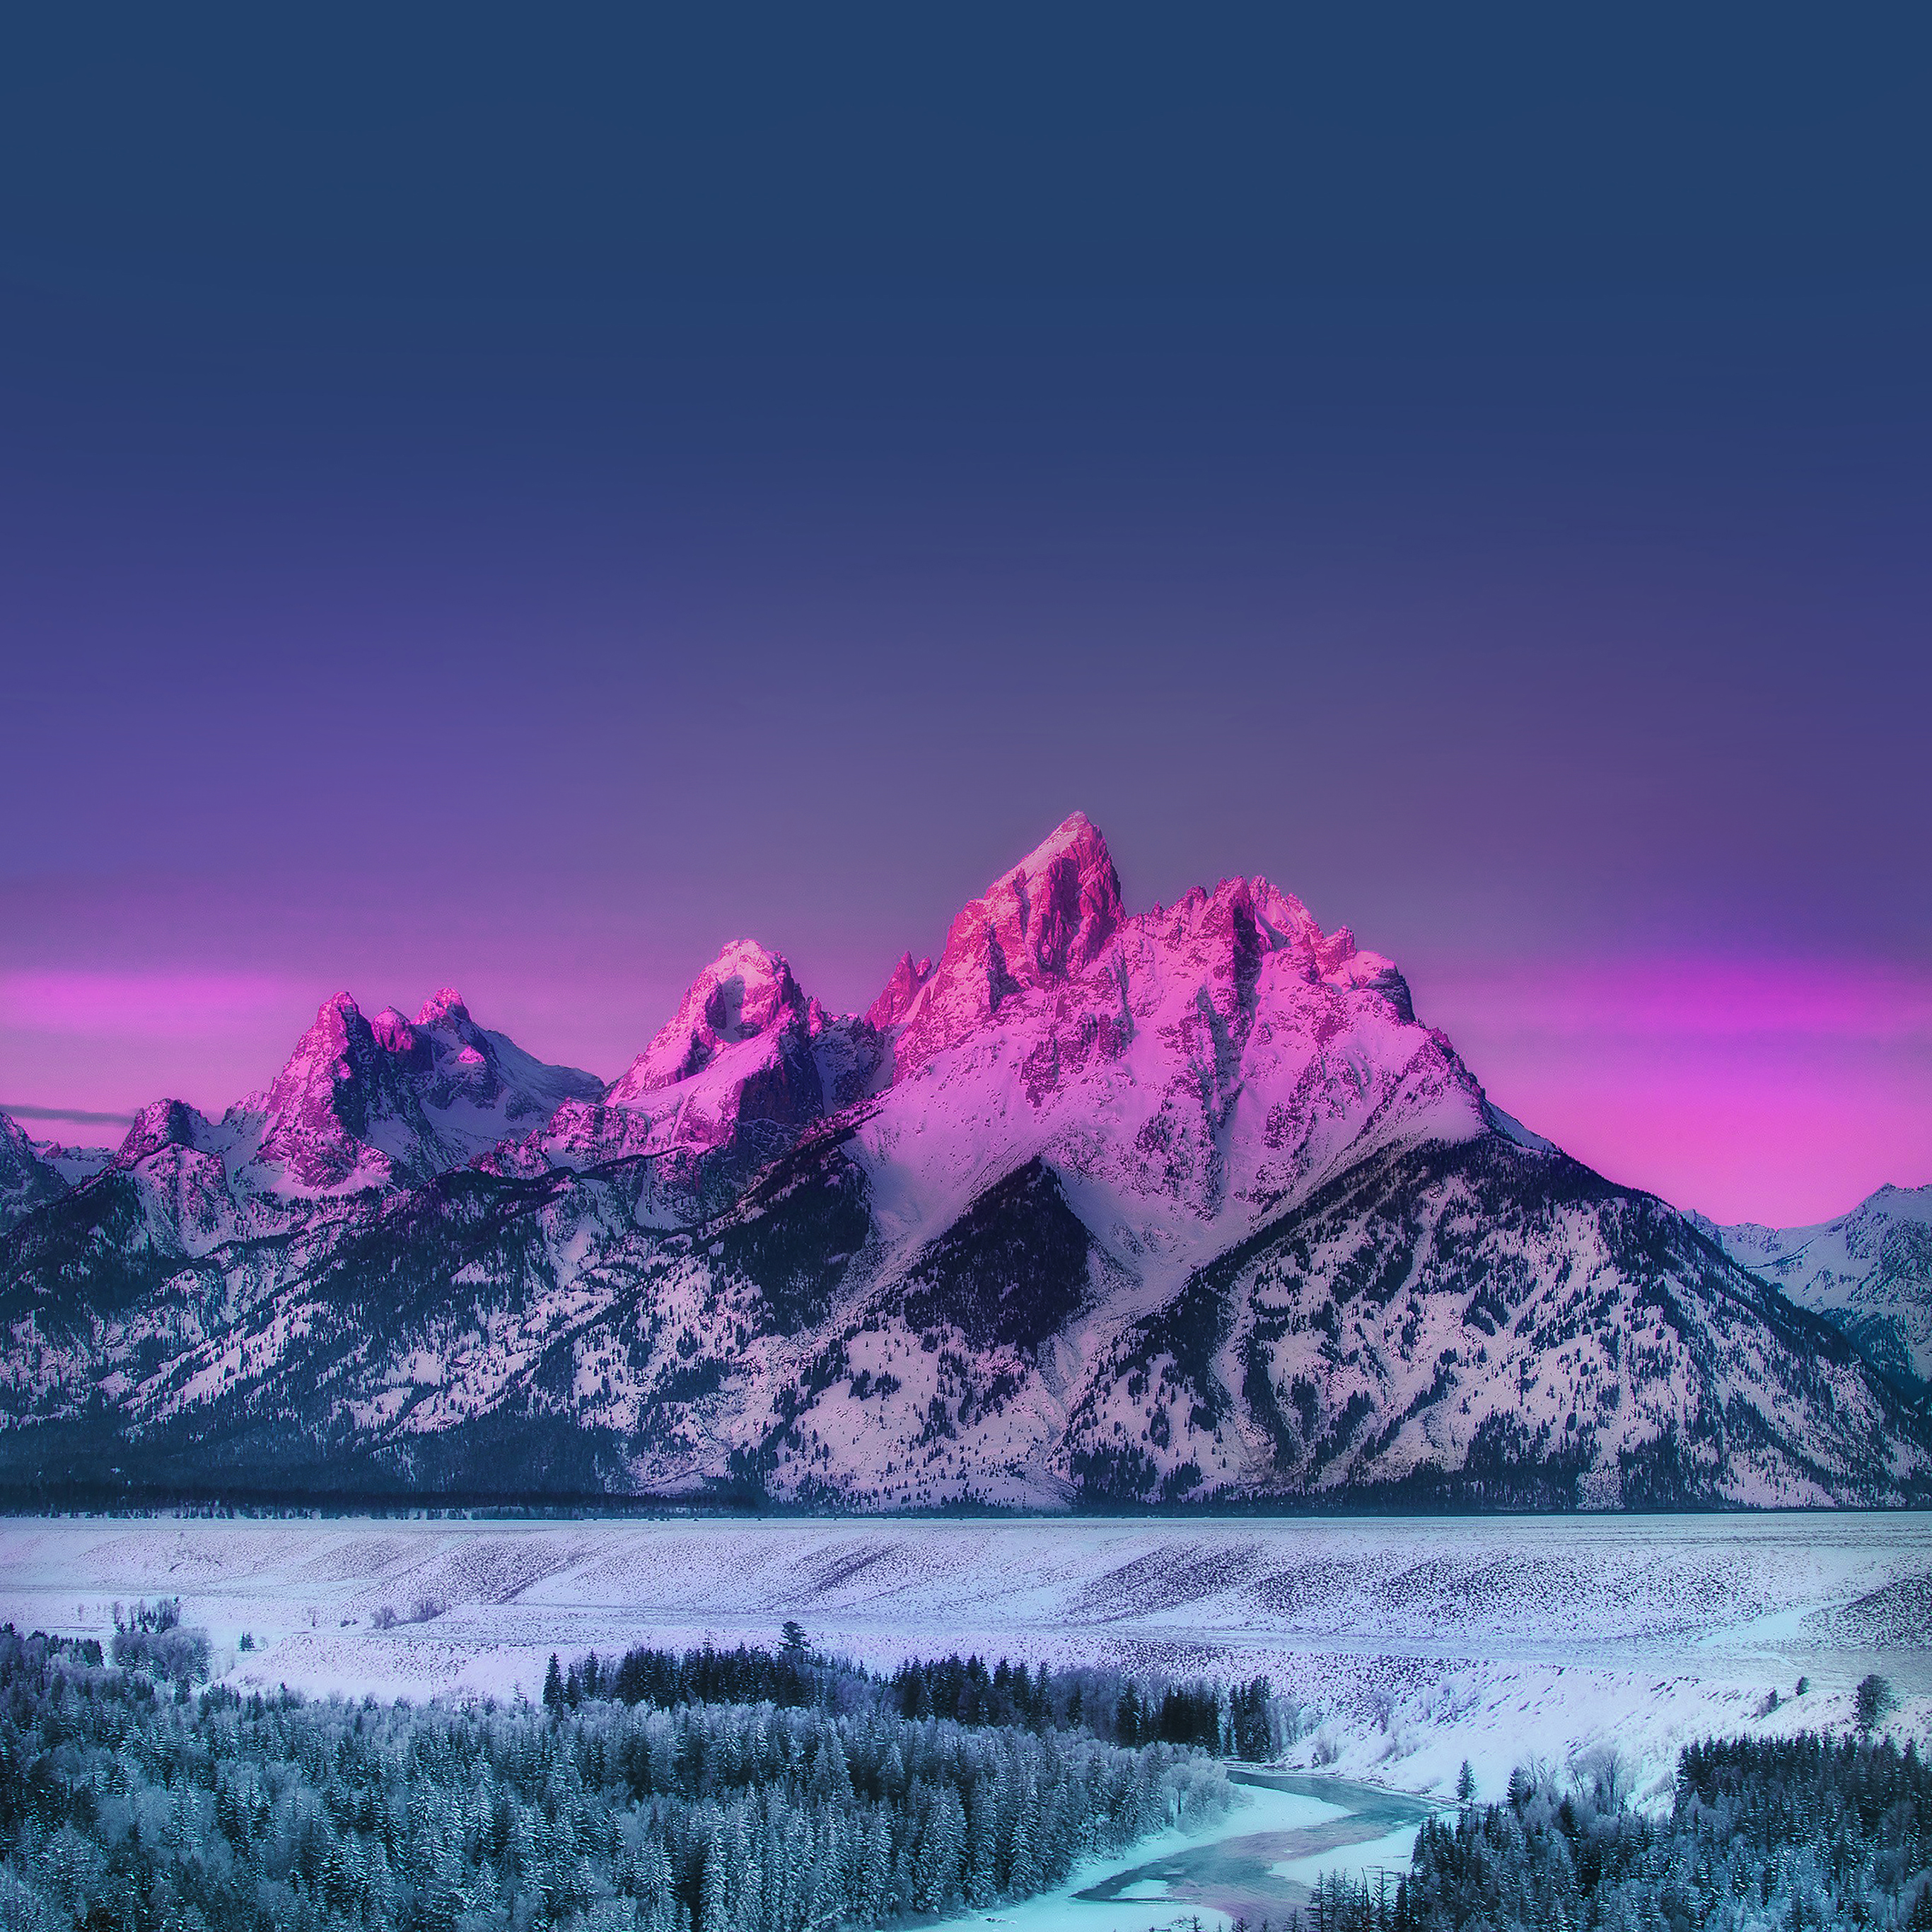 Mg91-mountain-mother-blue-sunset-nature-awesome-sky-wallpaper